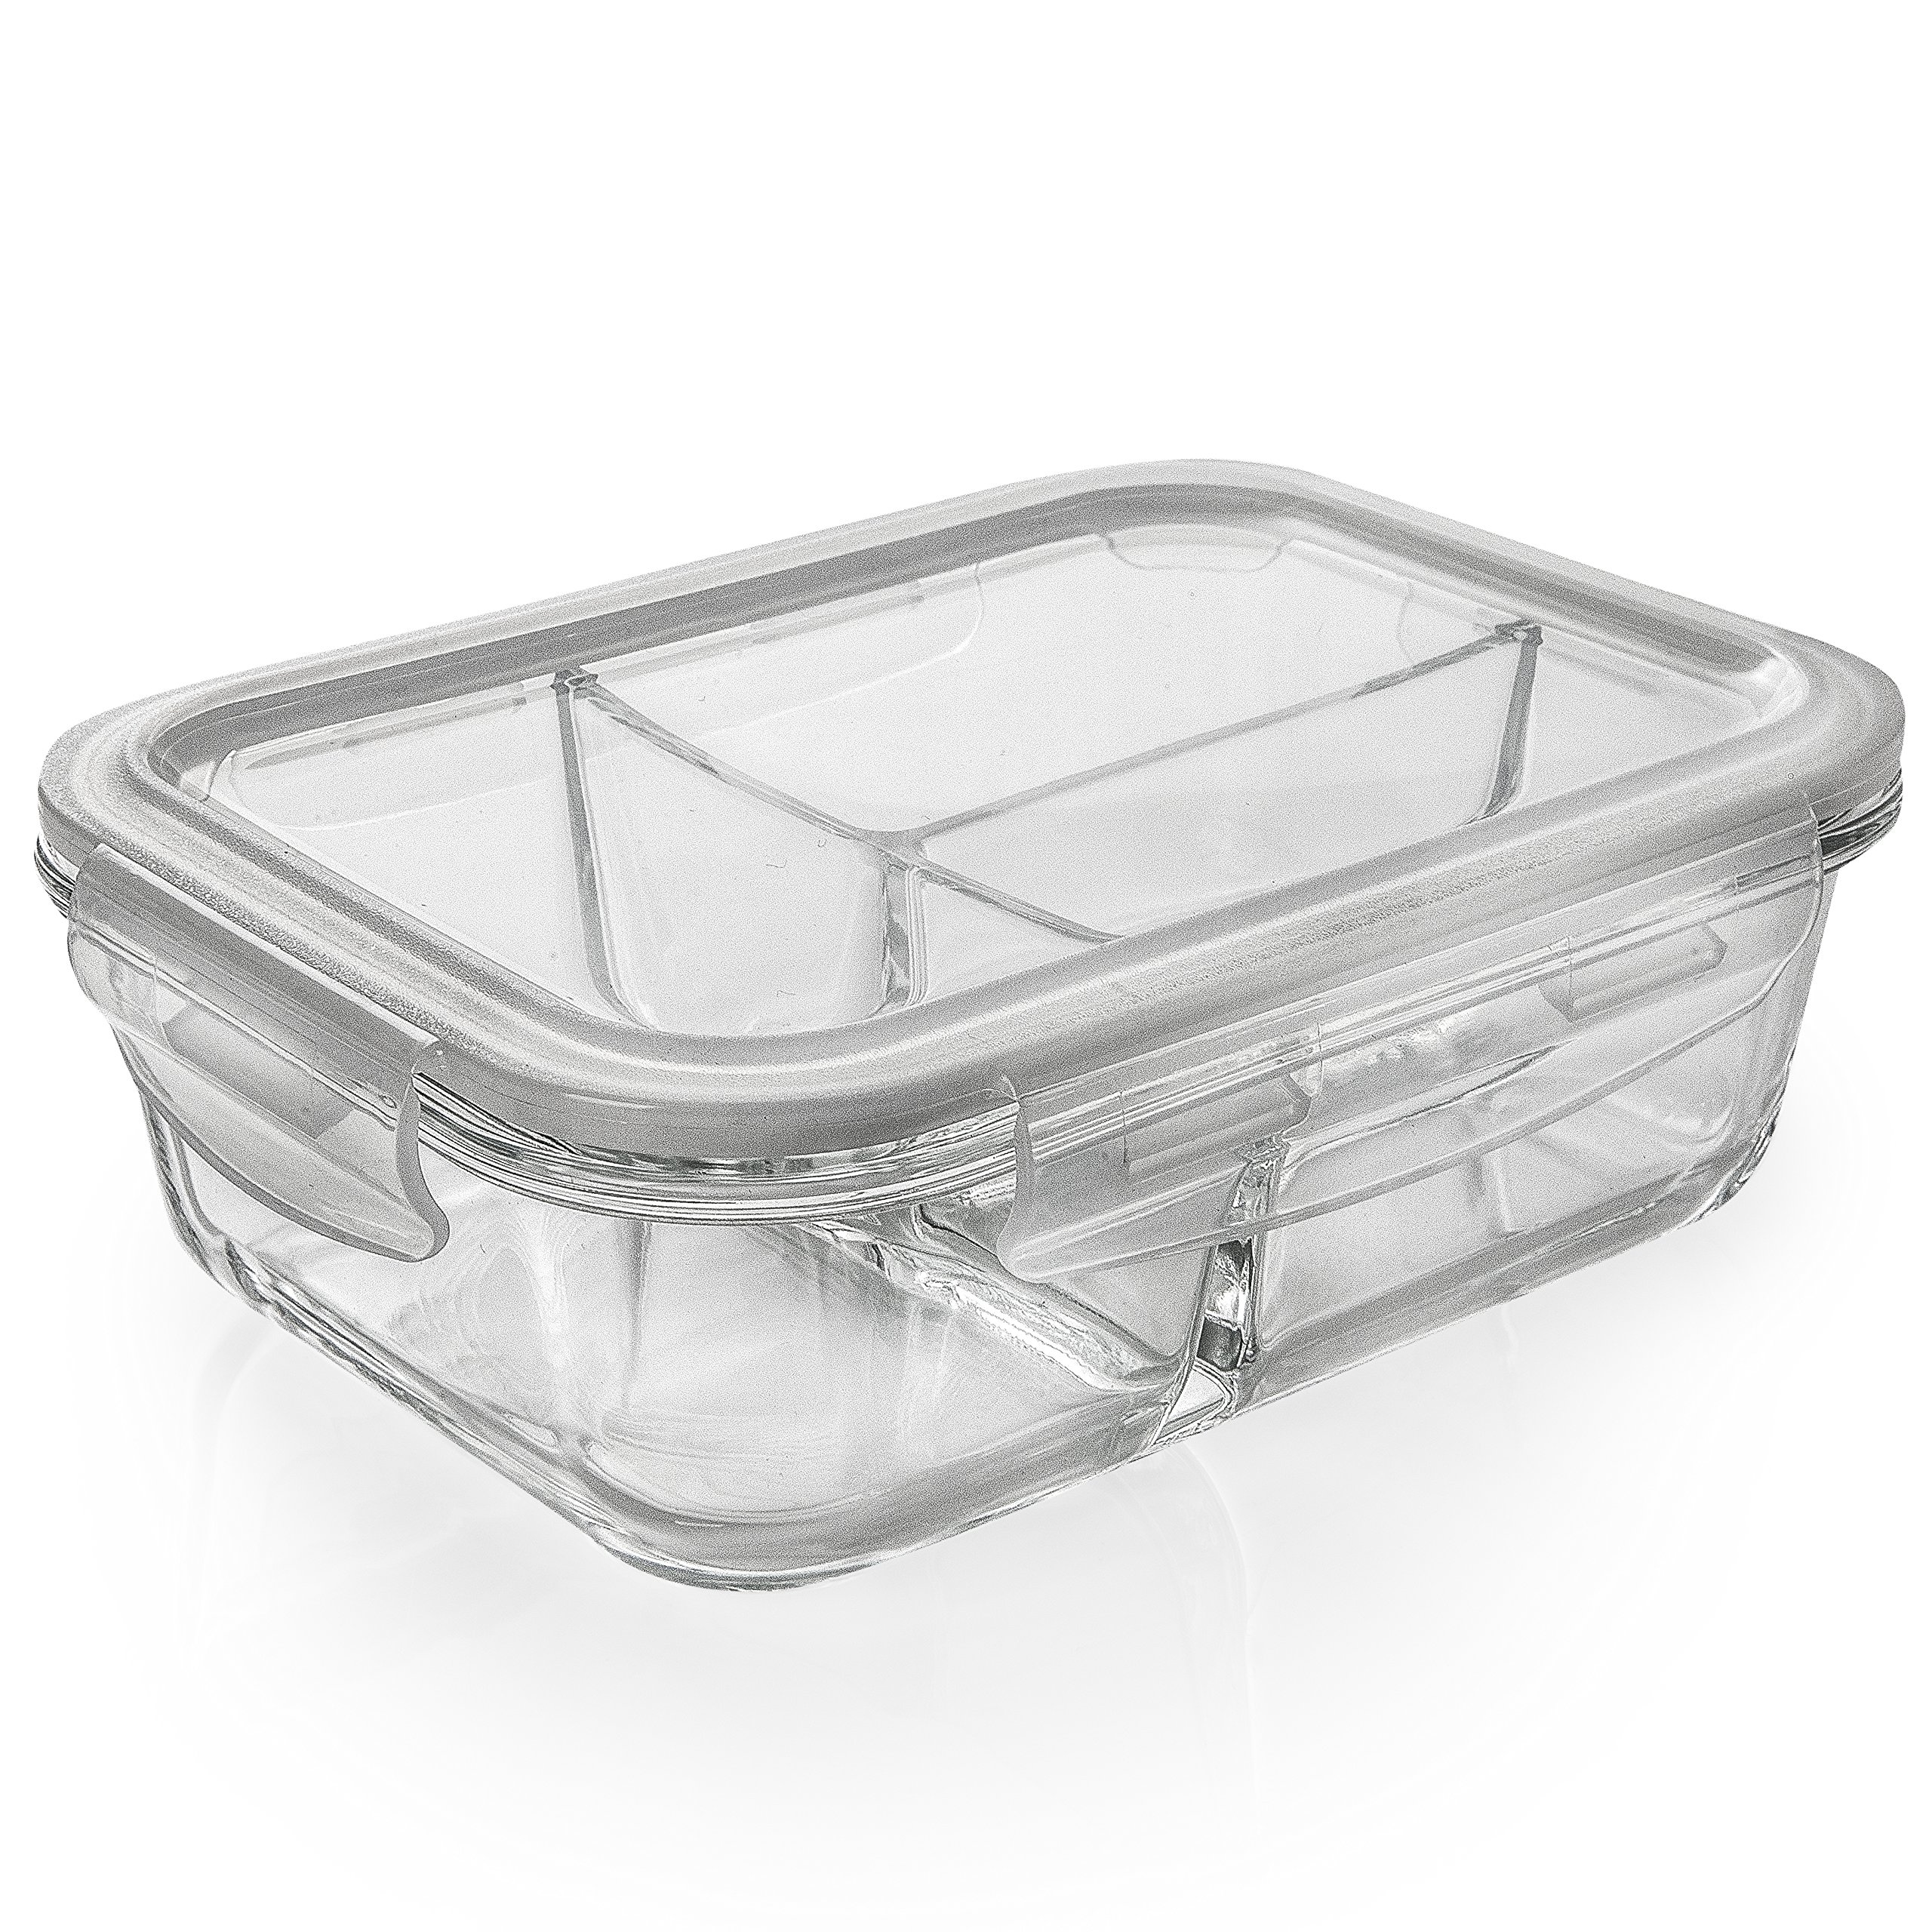 [5-Pack] Glass Meal Prep Containers 3 Compartment - Bento Box Containers Glass Food Storage Containers with Lids - Food Prep Containers Glass Storage Containers with lids Lunch Containers by Prep Naturals (Image #8)